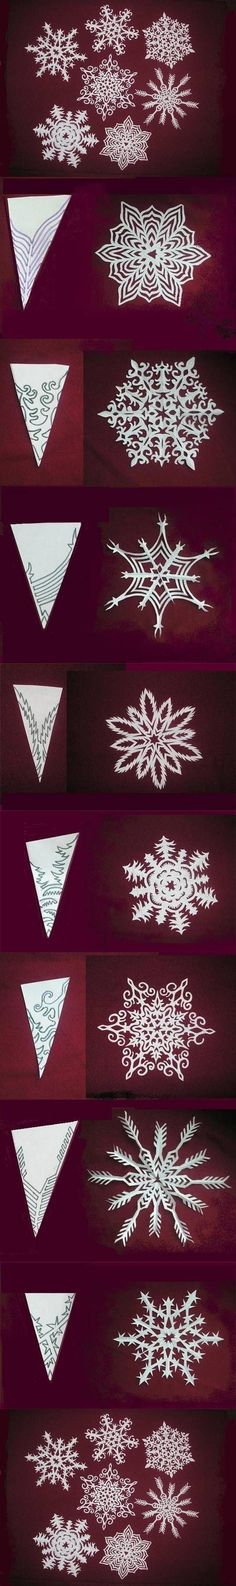 DIY Snowflakes Paper Pattern - Christmas ornaments